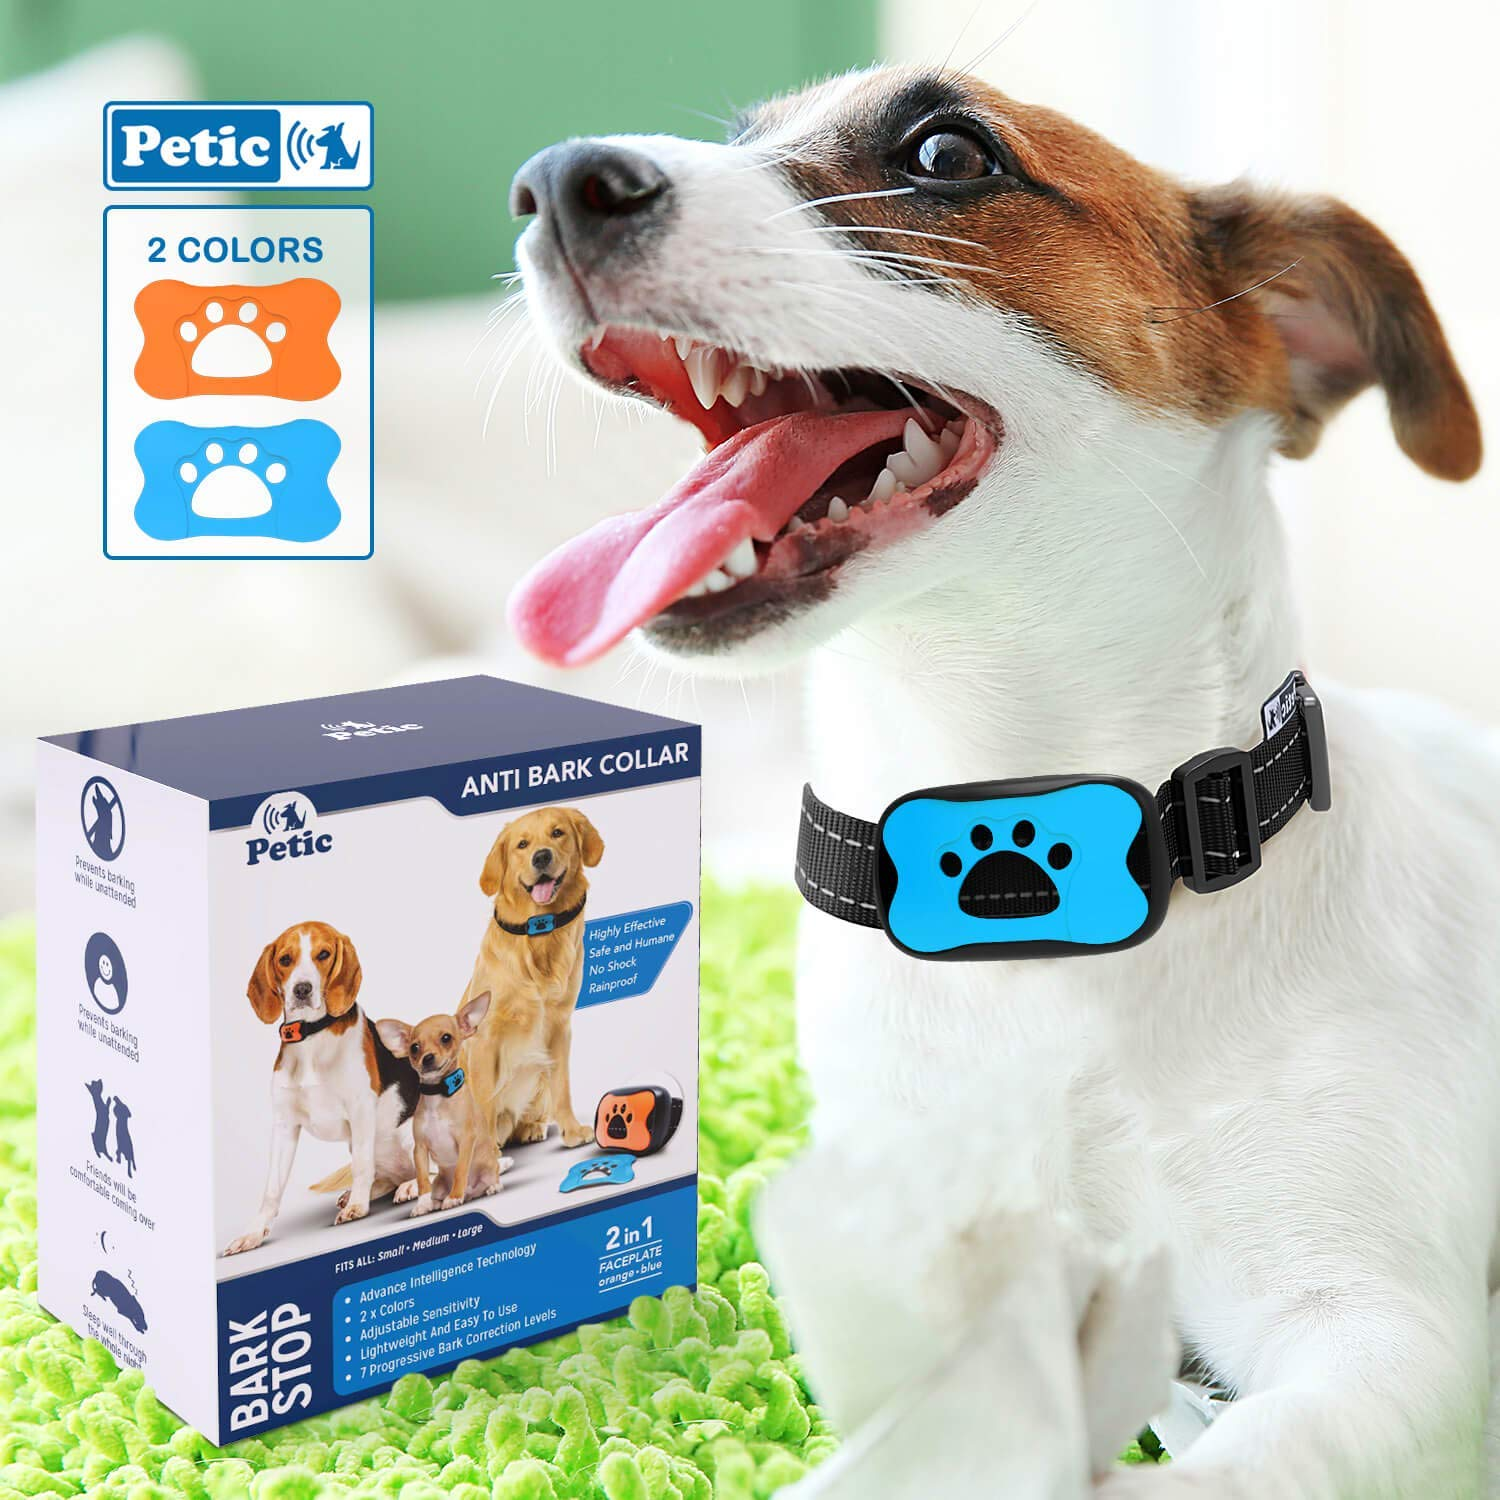 Advanced 2in1 Anti Bark Dog Collar   Stop Dogs Excessive Barking Device! SAFE HARMLESS & HUMANE Anti-Bark Training for Small Medium Large Size Breeds